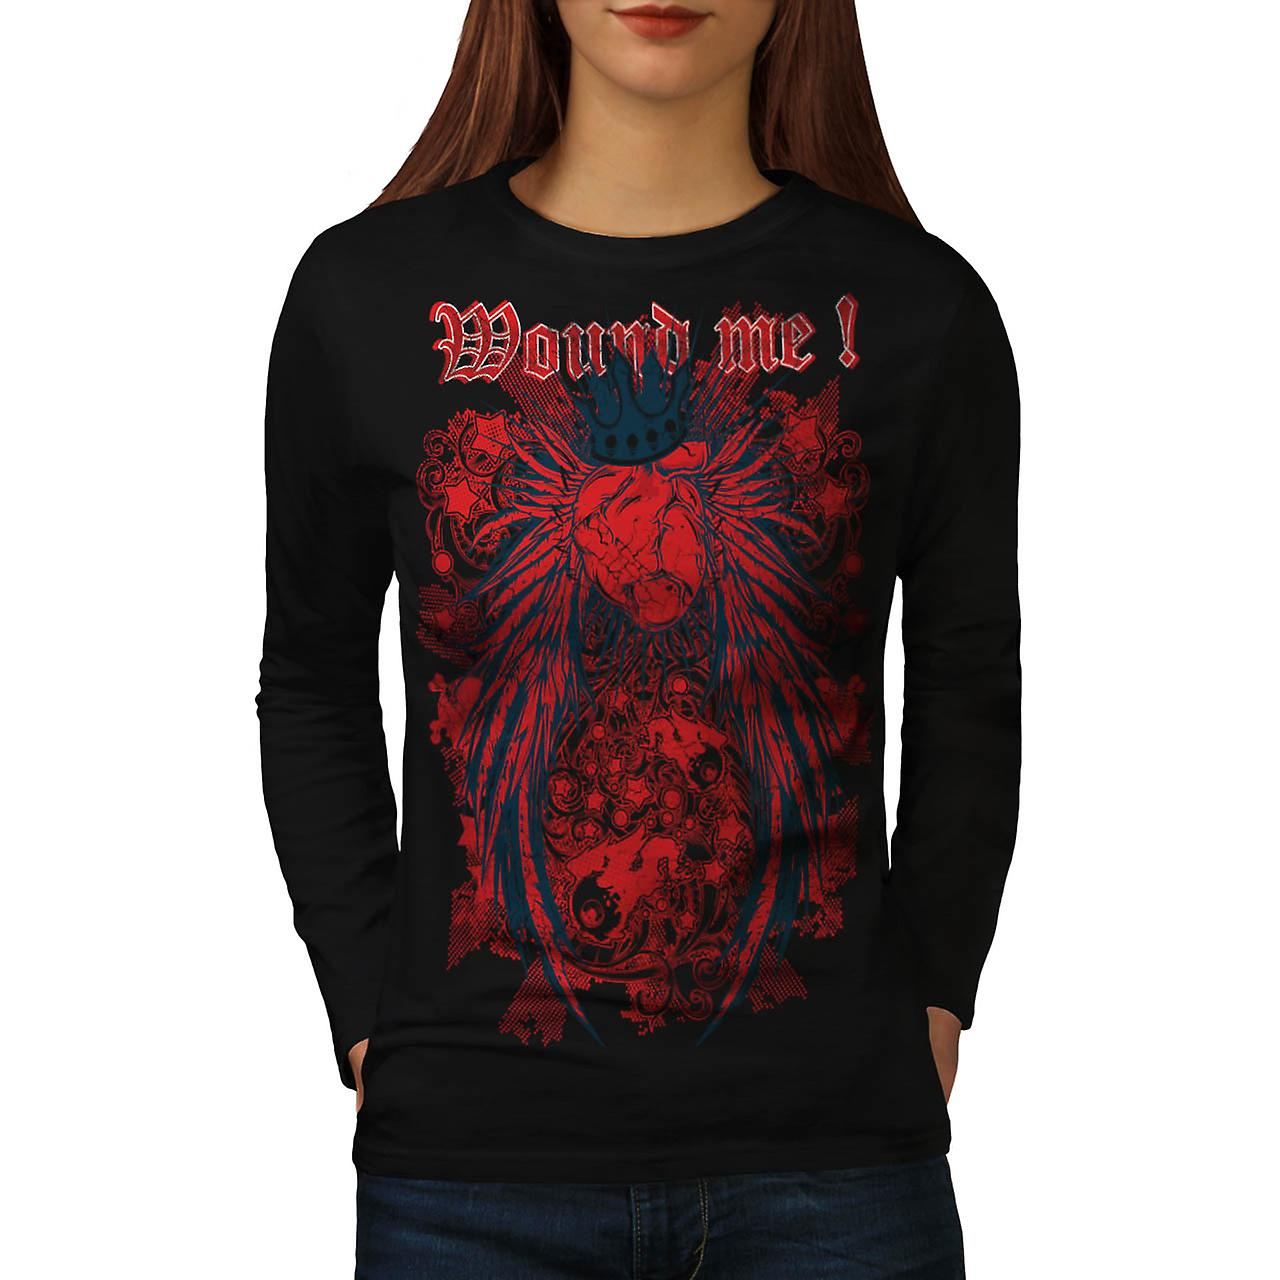 Wounded Heart Art Fashion Women Black Long Sleeve T-shirt | Wellcoda